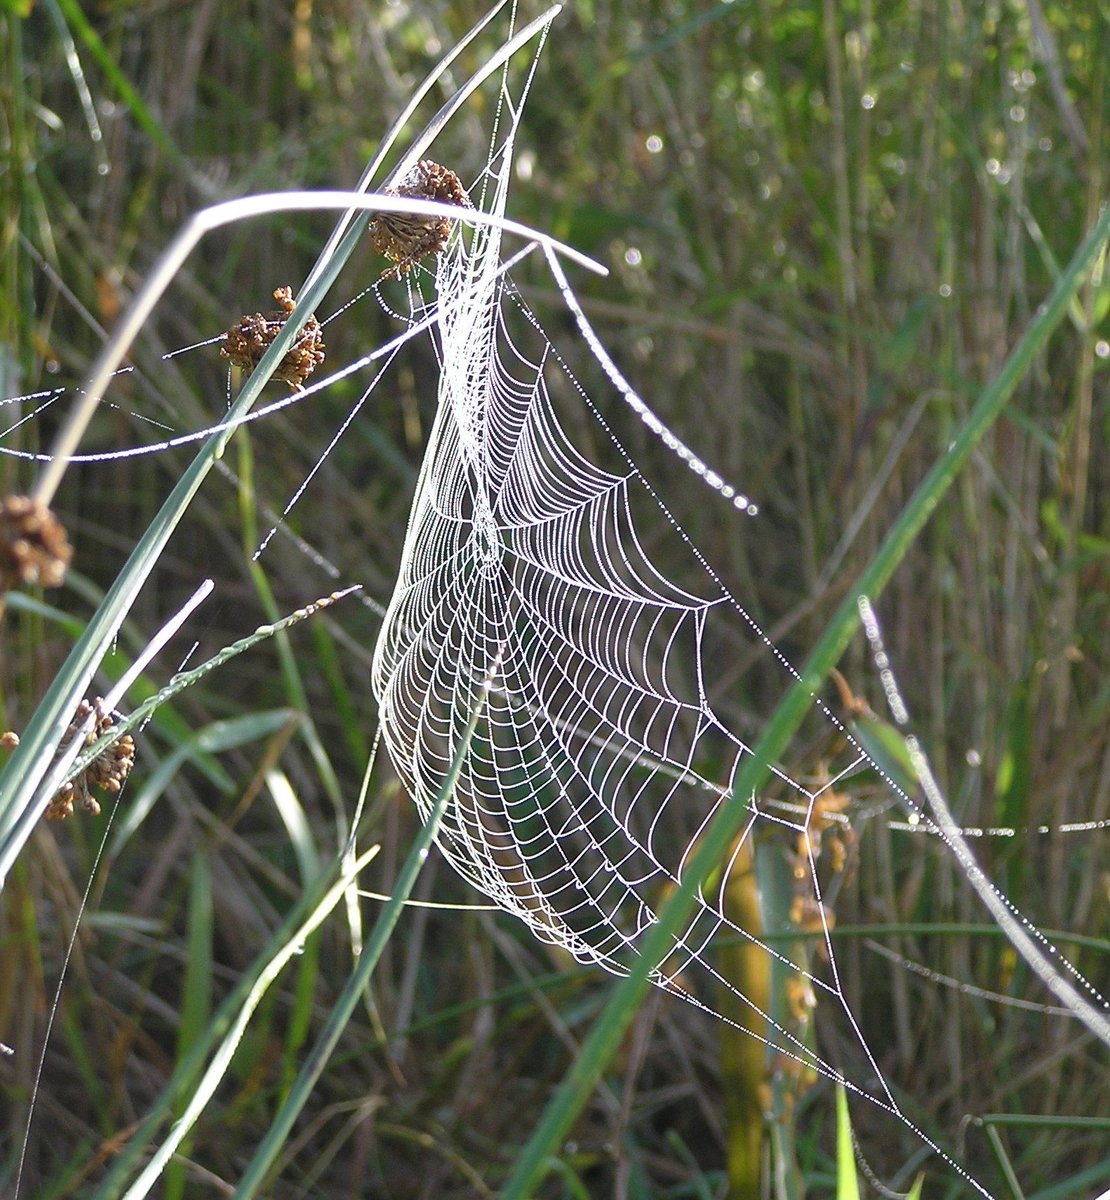 Dont forget the little ones: 17% of GBs 670+ spider species are threatened with extinction. Spiders are essential to normal functioning of ecosystems & ultimately our well-being. @ChrisGPackham @IUCNSpiderSG #PeoplesWalkforWildlife @Ecoentogeek